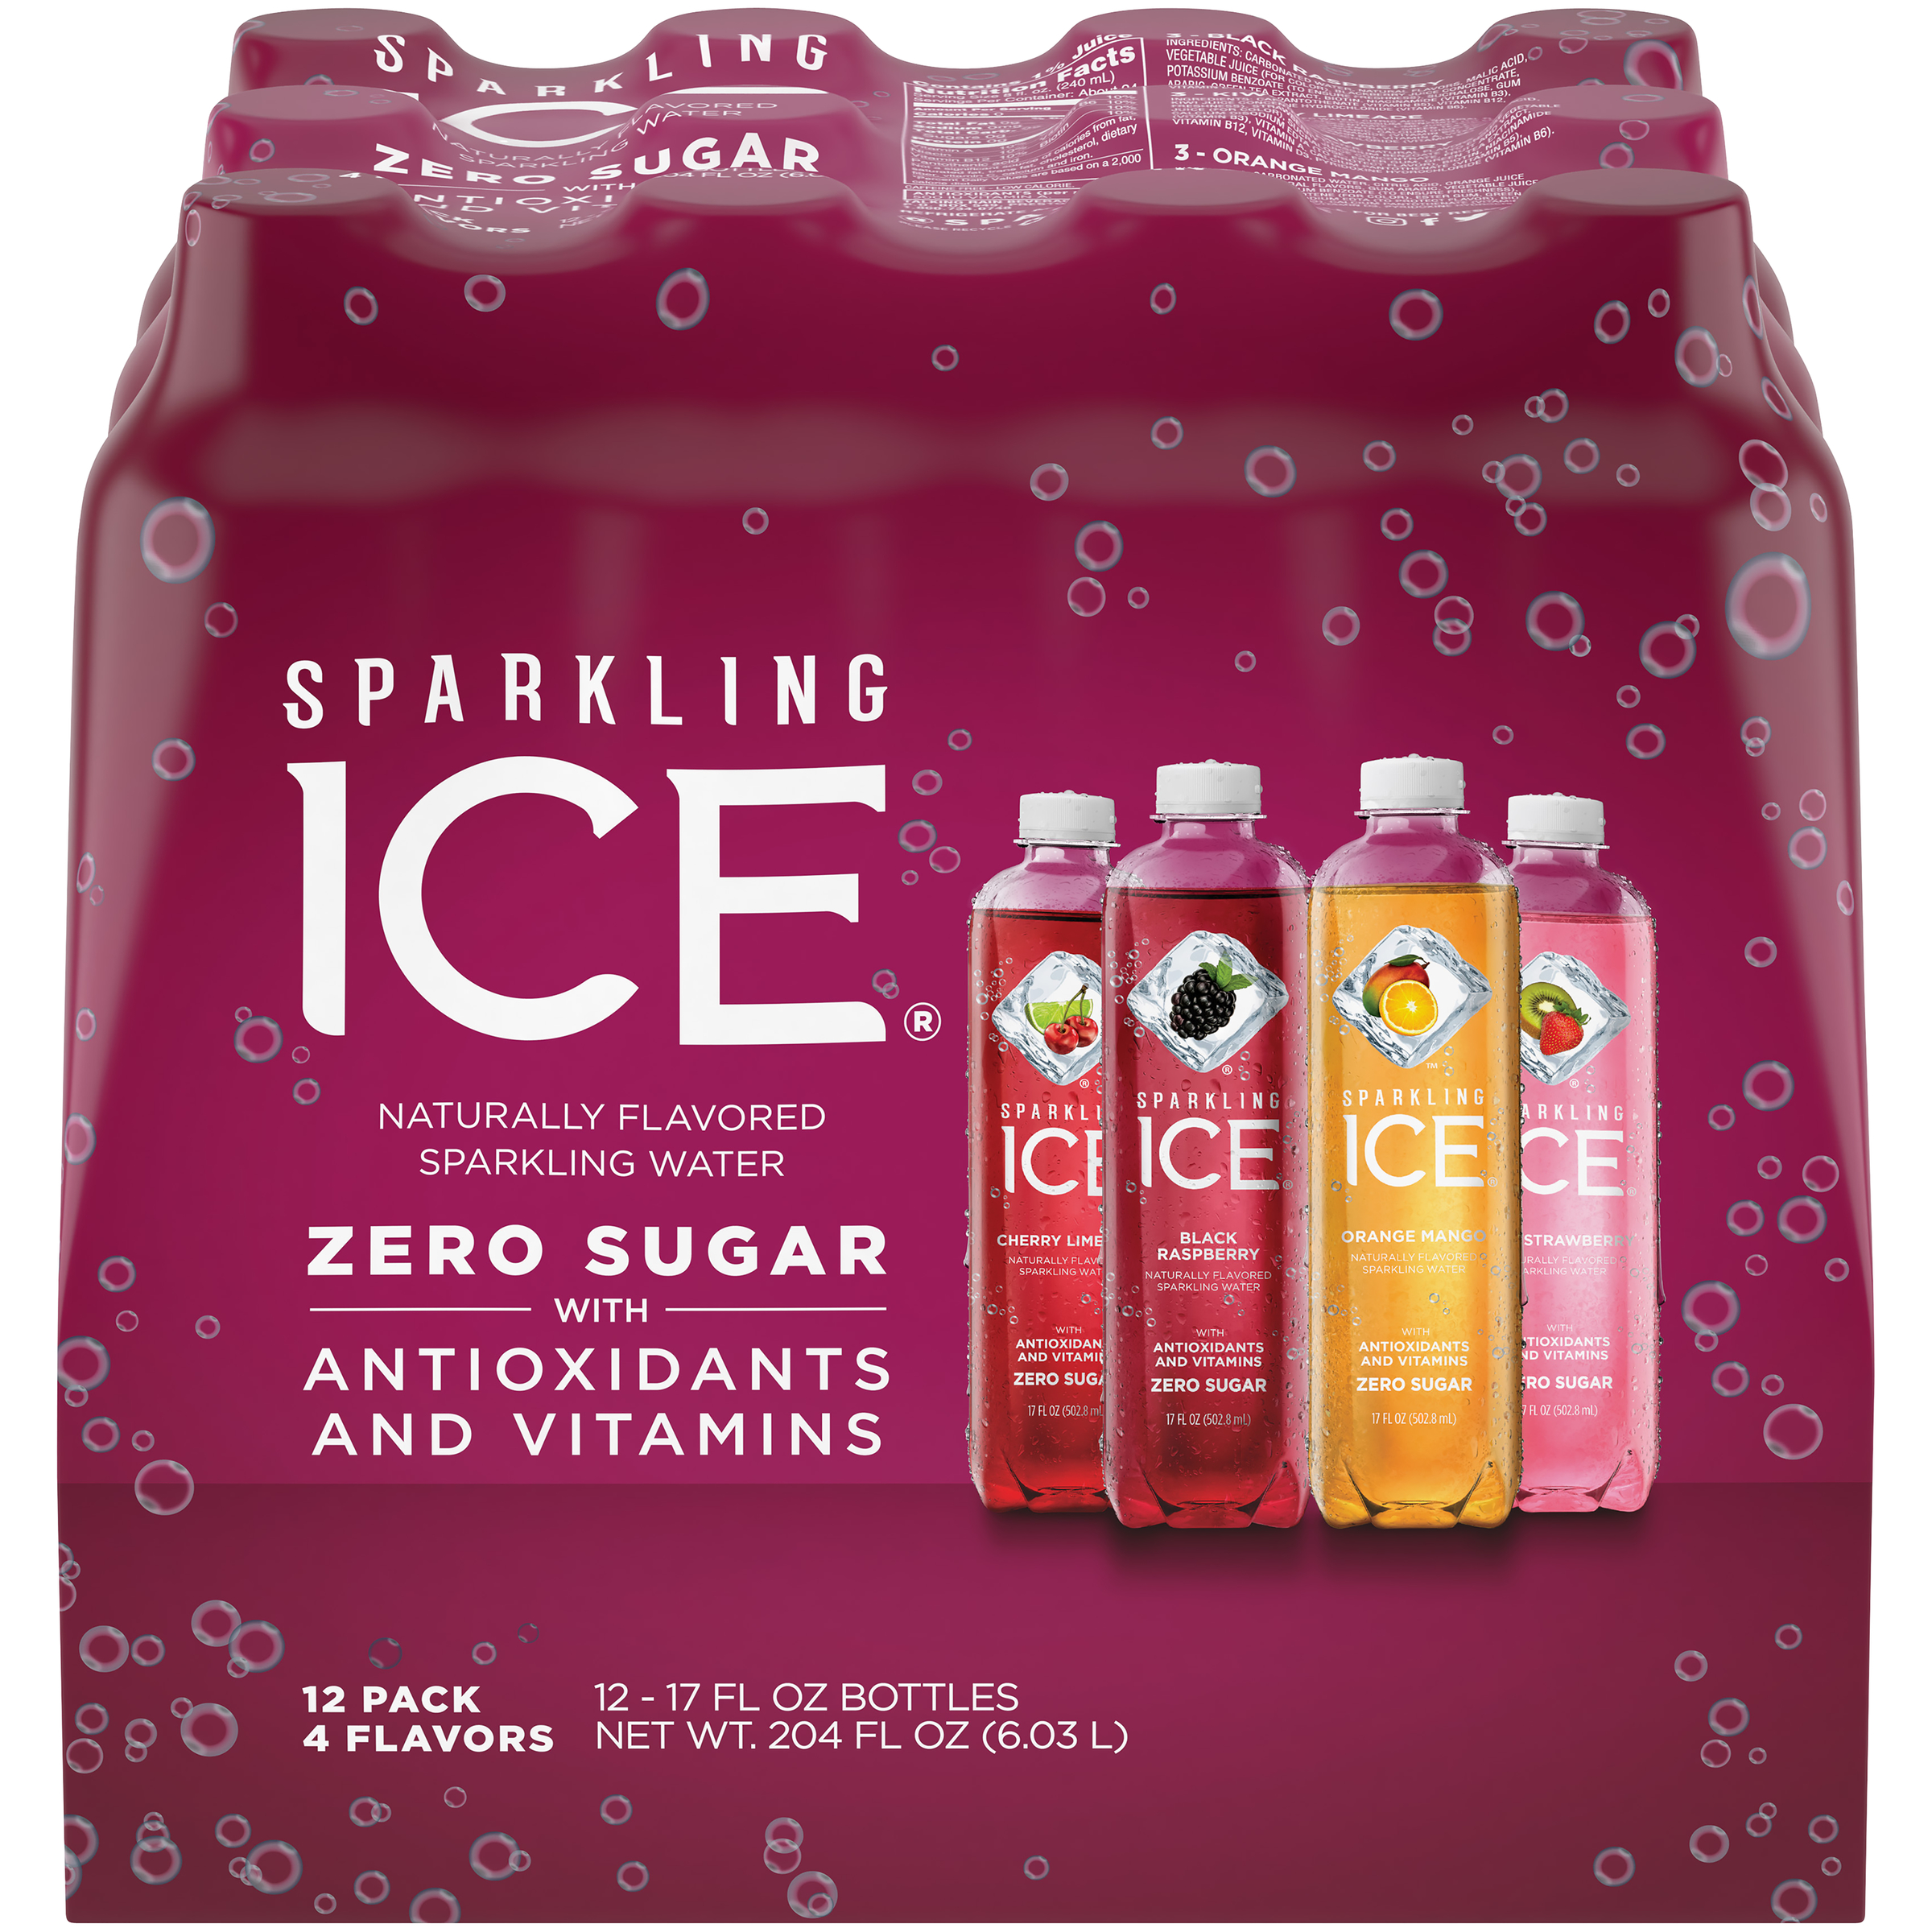 Sparkling Ice Variety Pack, 17 Fl Oz, 12 Count (Kiwi Strawberry, Orange Mango, Cherry Limeade, Black Raspberry)